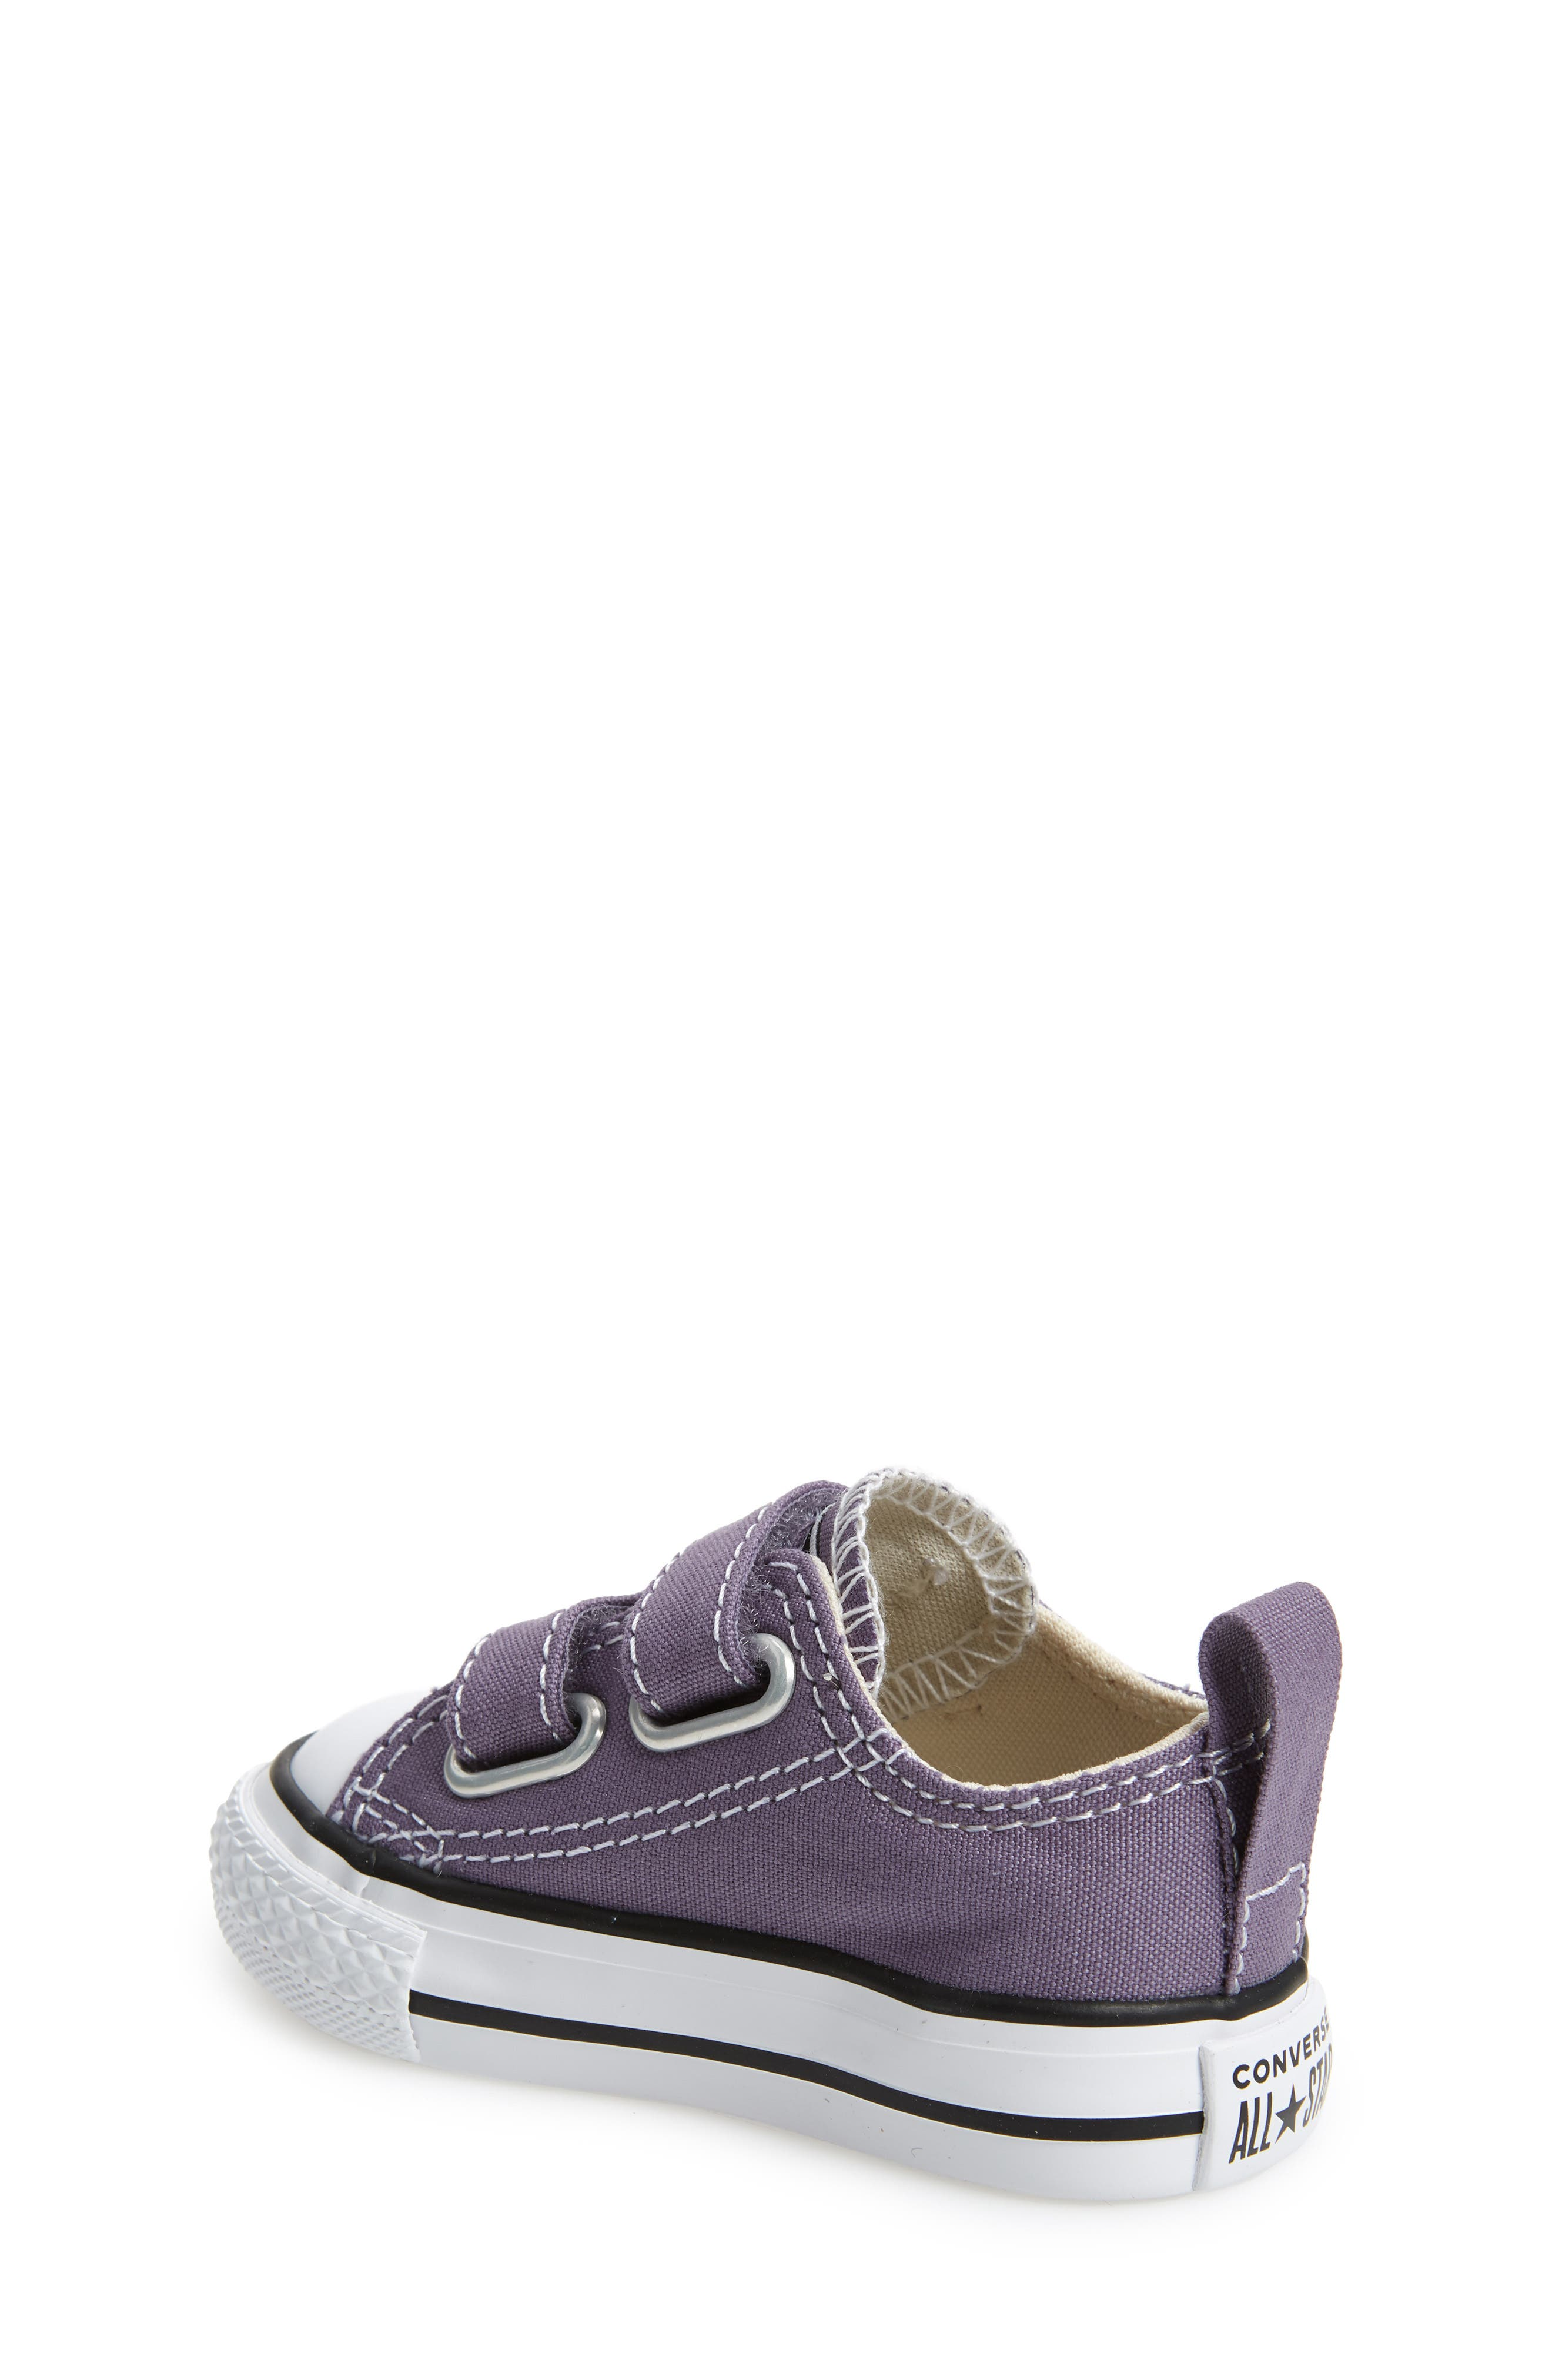 Chuck Taylor<sup>®</sup> 'Double Strap' Sneaker,                             Alternate thumbnail 2, color,                             MOODY PURPLE/ NATURAL IVORY